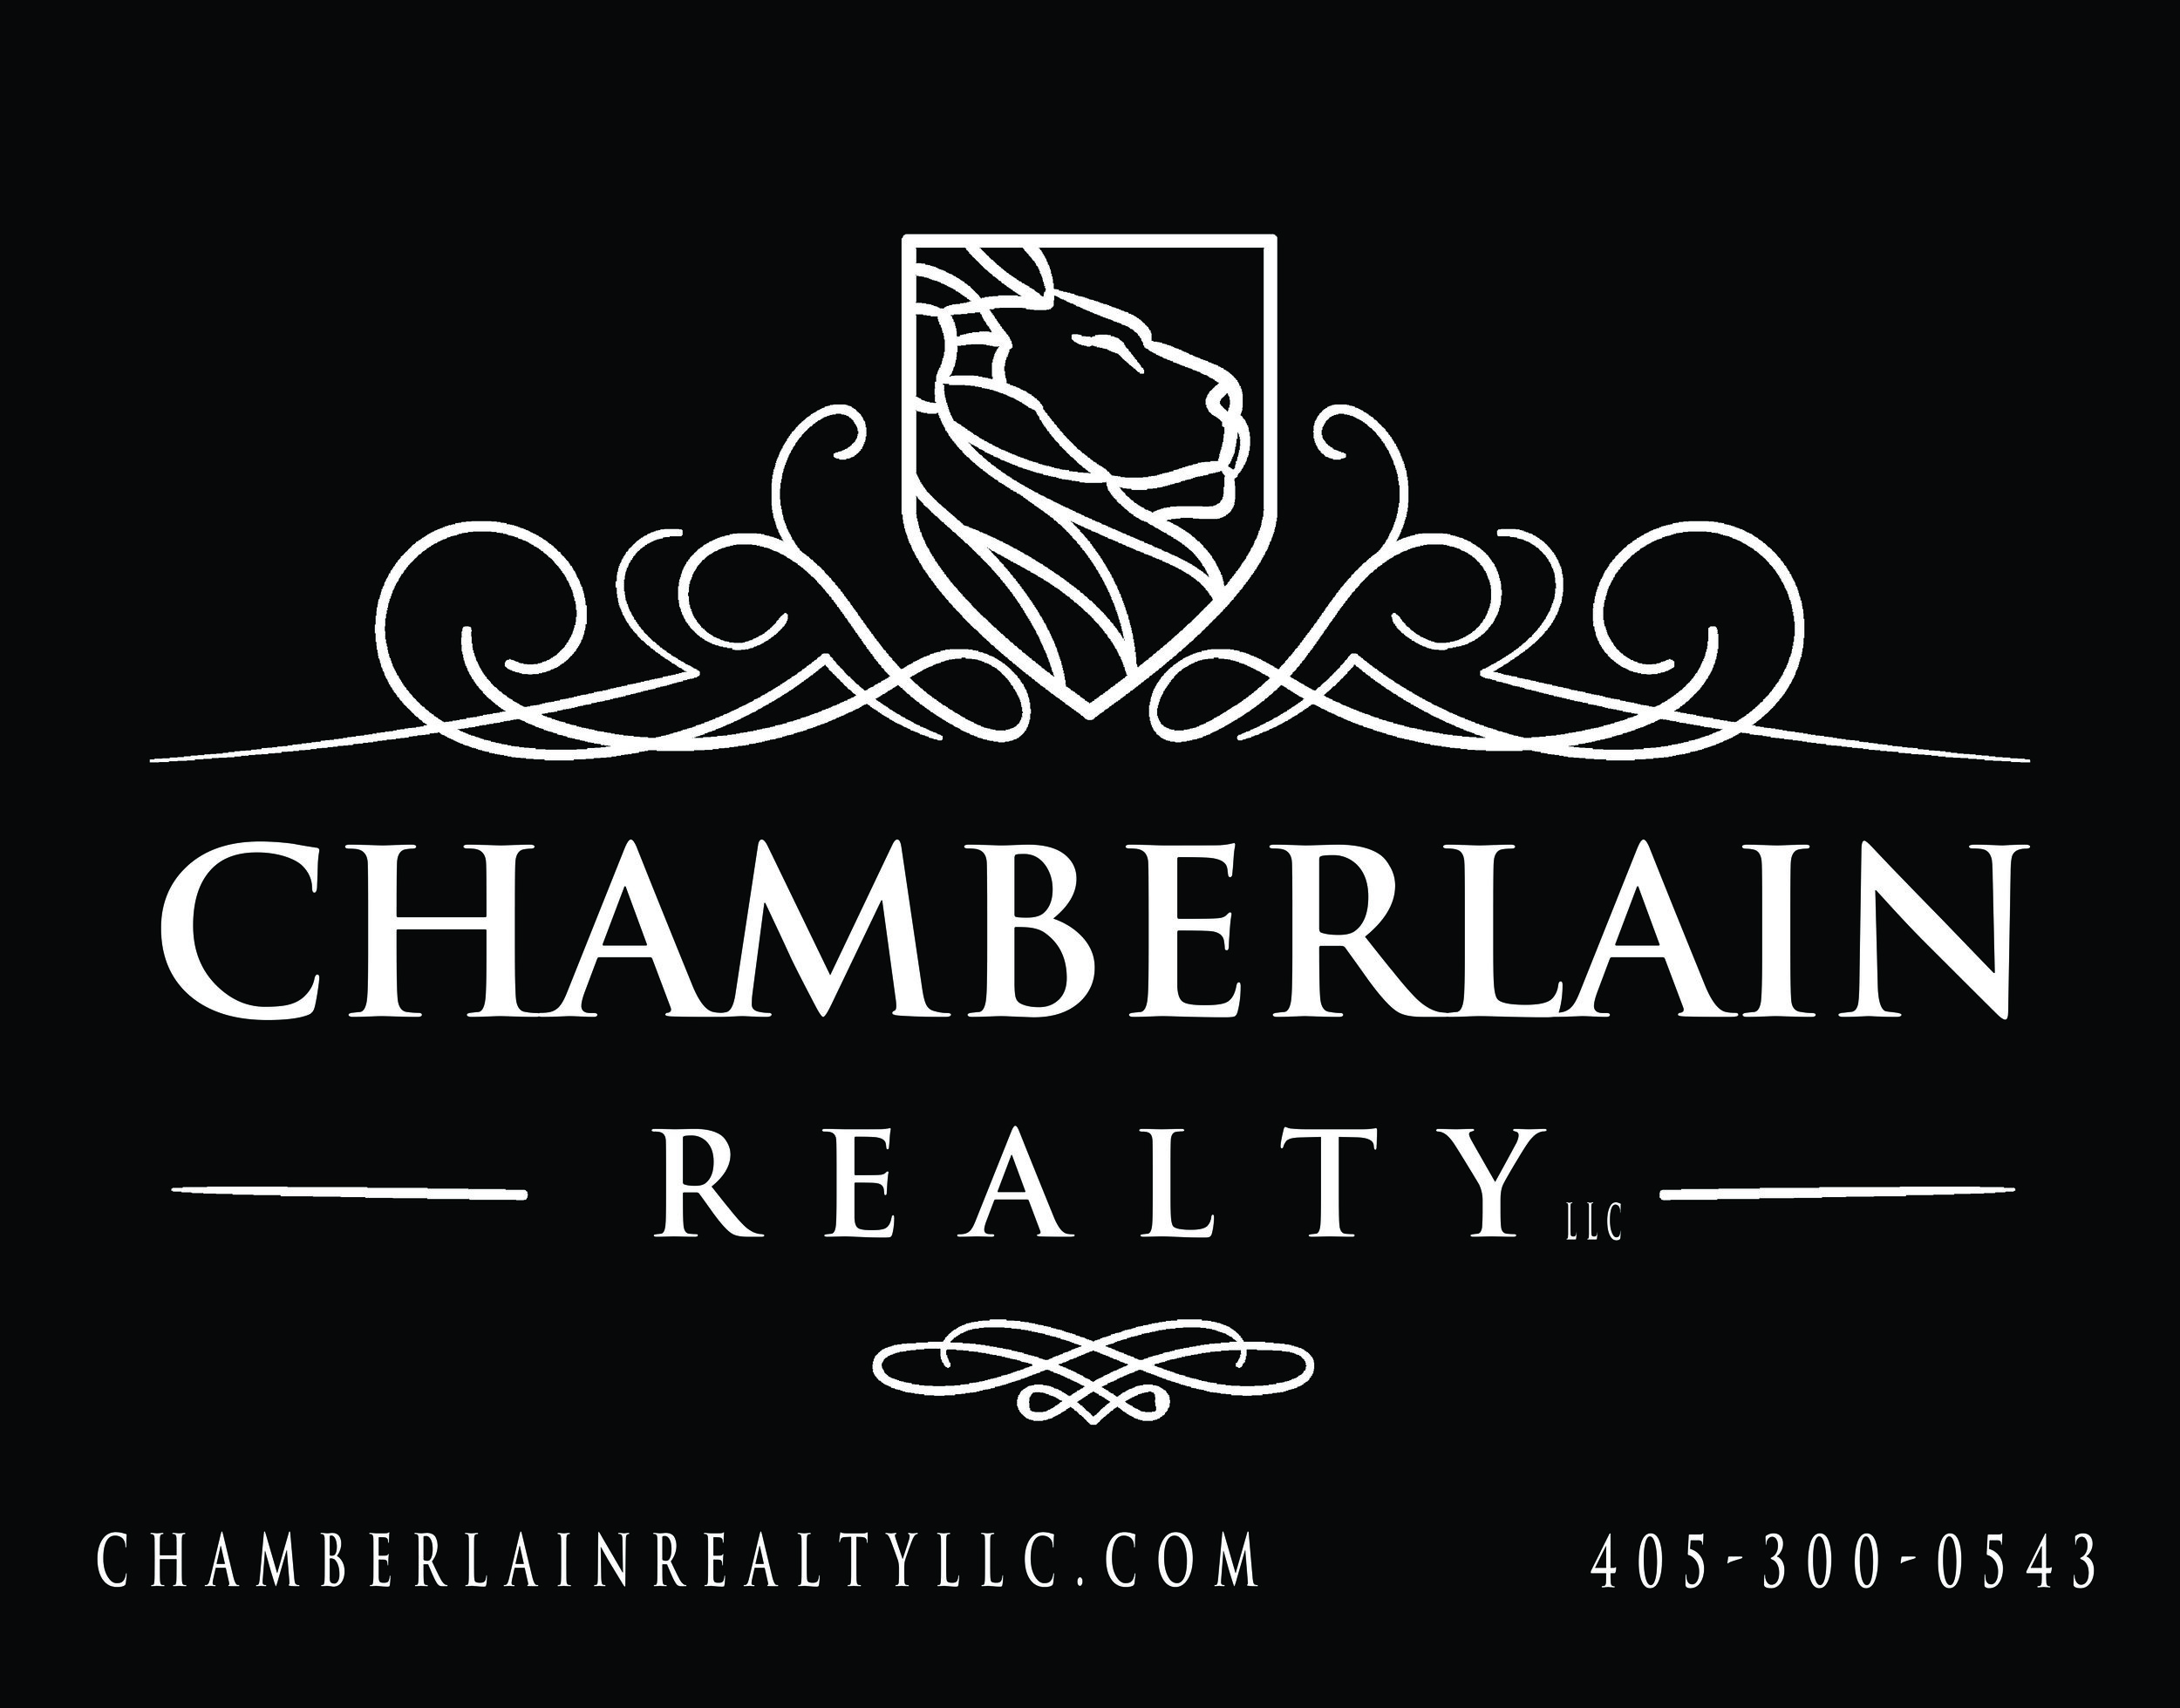 Chamberlain Logo Black and White.jpg